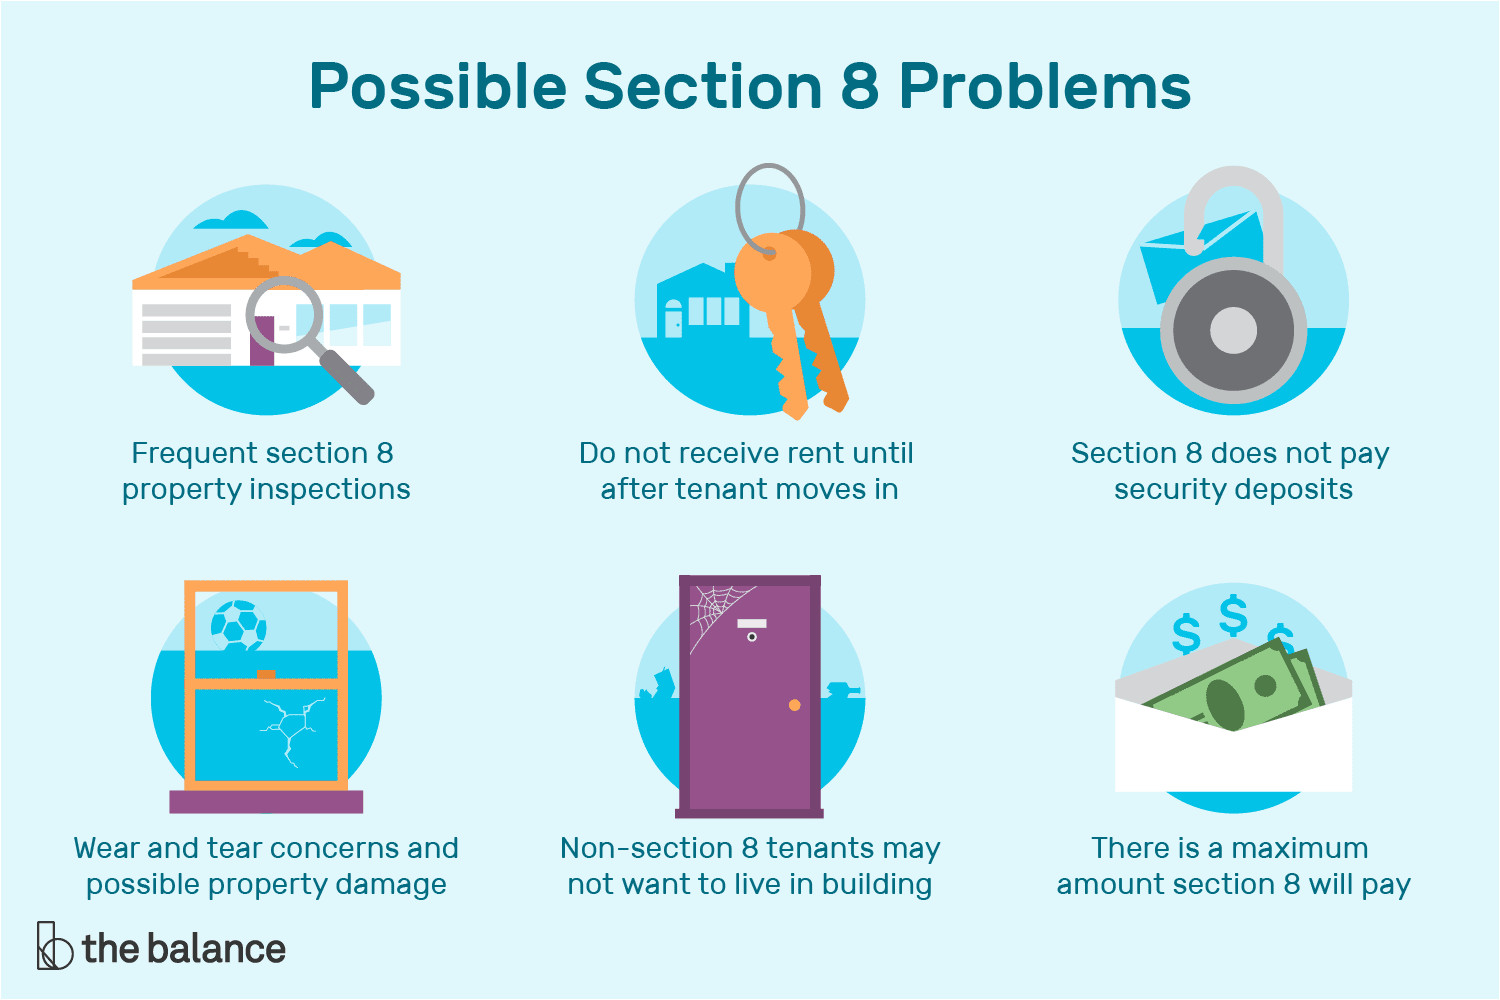 renting to section 8 tenants disadvantages 2124975 final 5bd08b89c9e77c0051f54e59 png